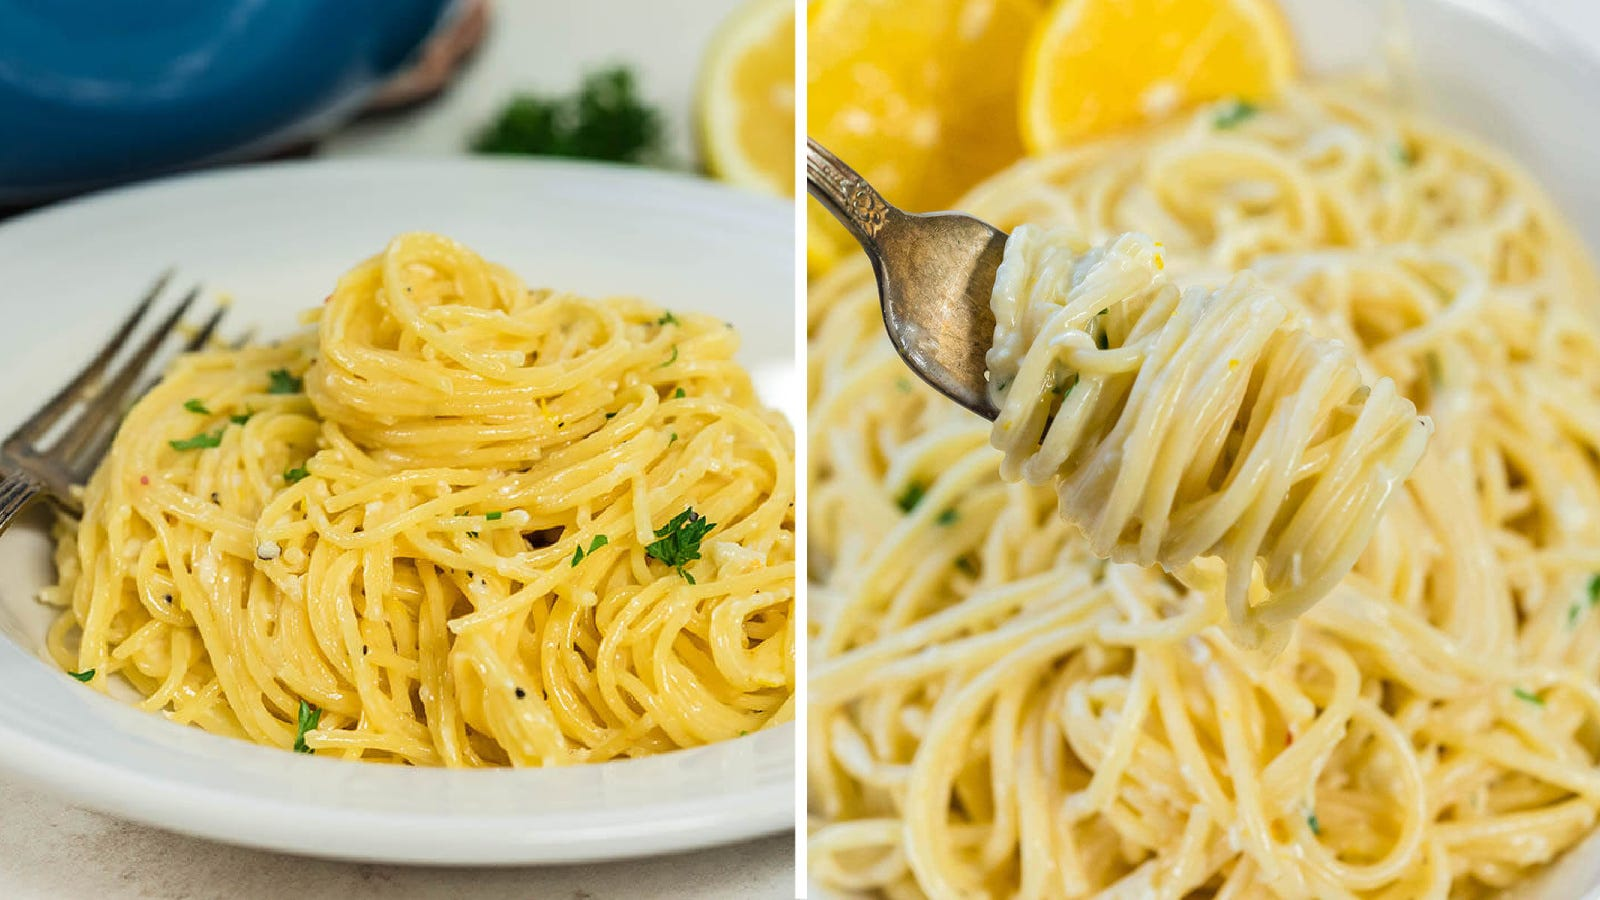 Two side by side images of creamy lemon butter pasta topped with parsley garnish.